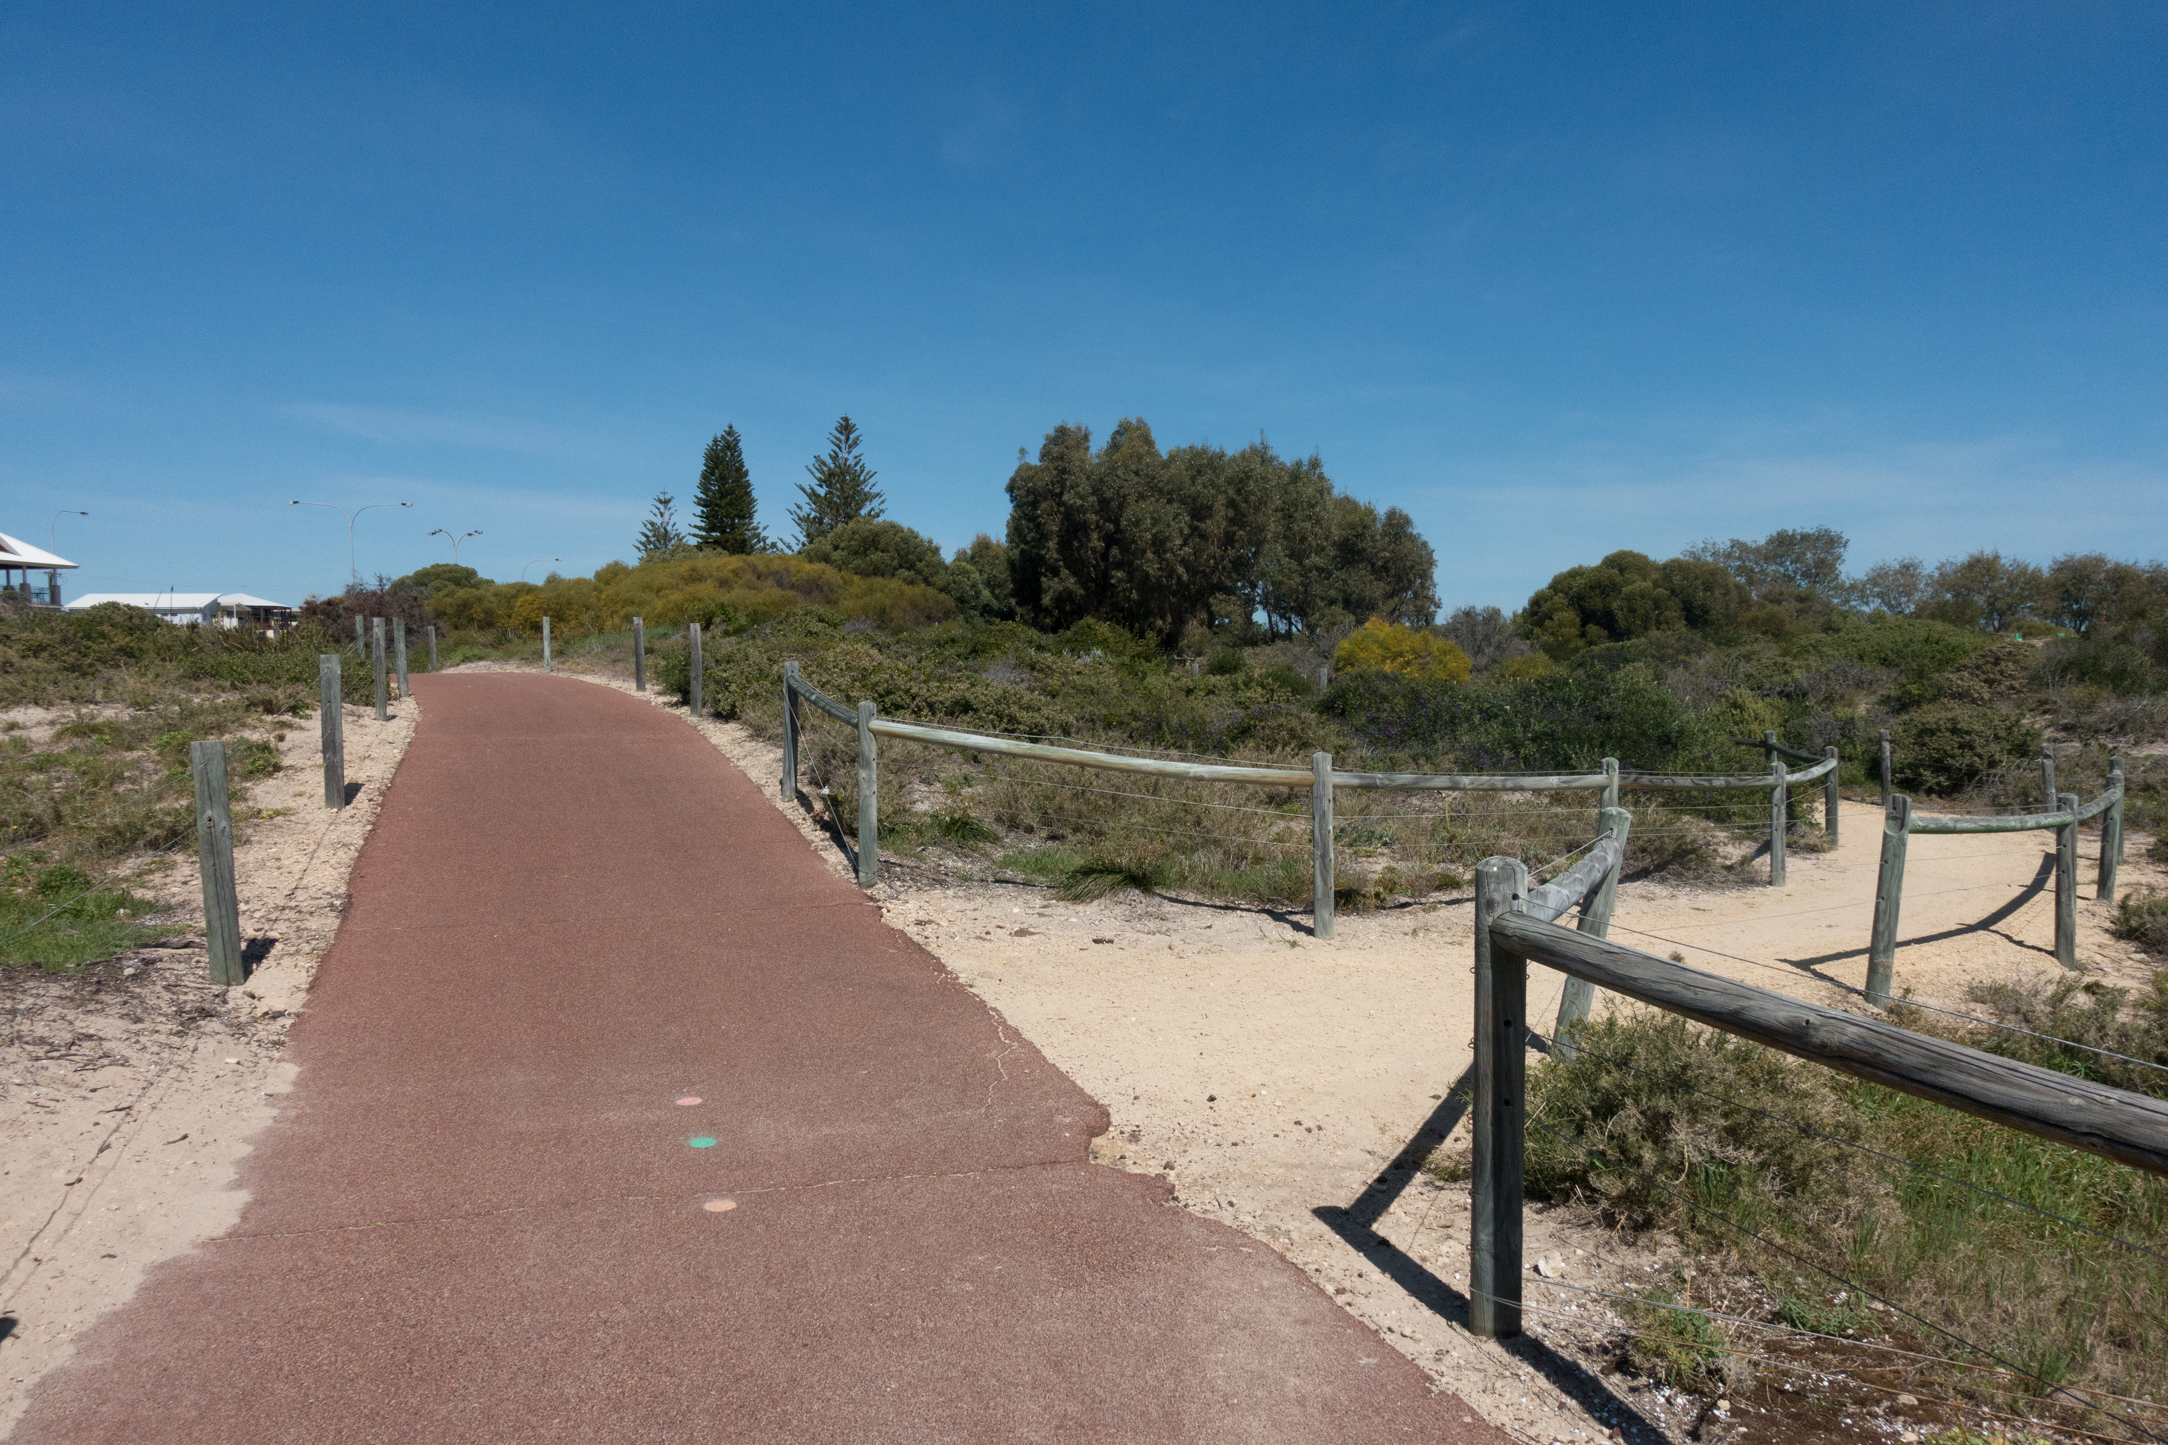 Plate 2: Limestone path to the carpark adjacent to the T junction of Singleton Beach Road and Foreshore Drive